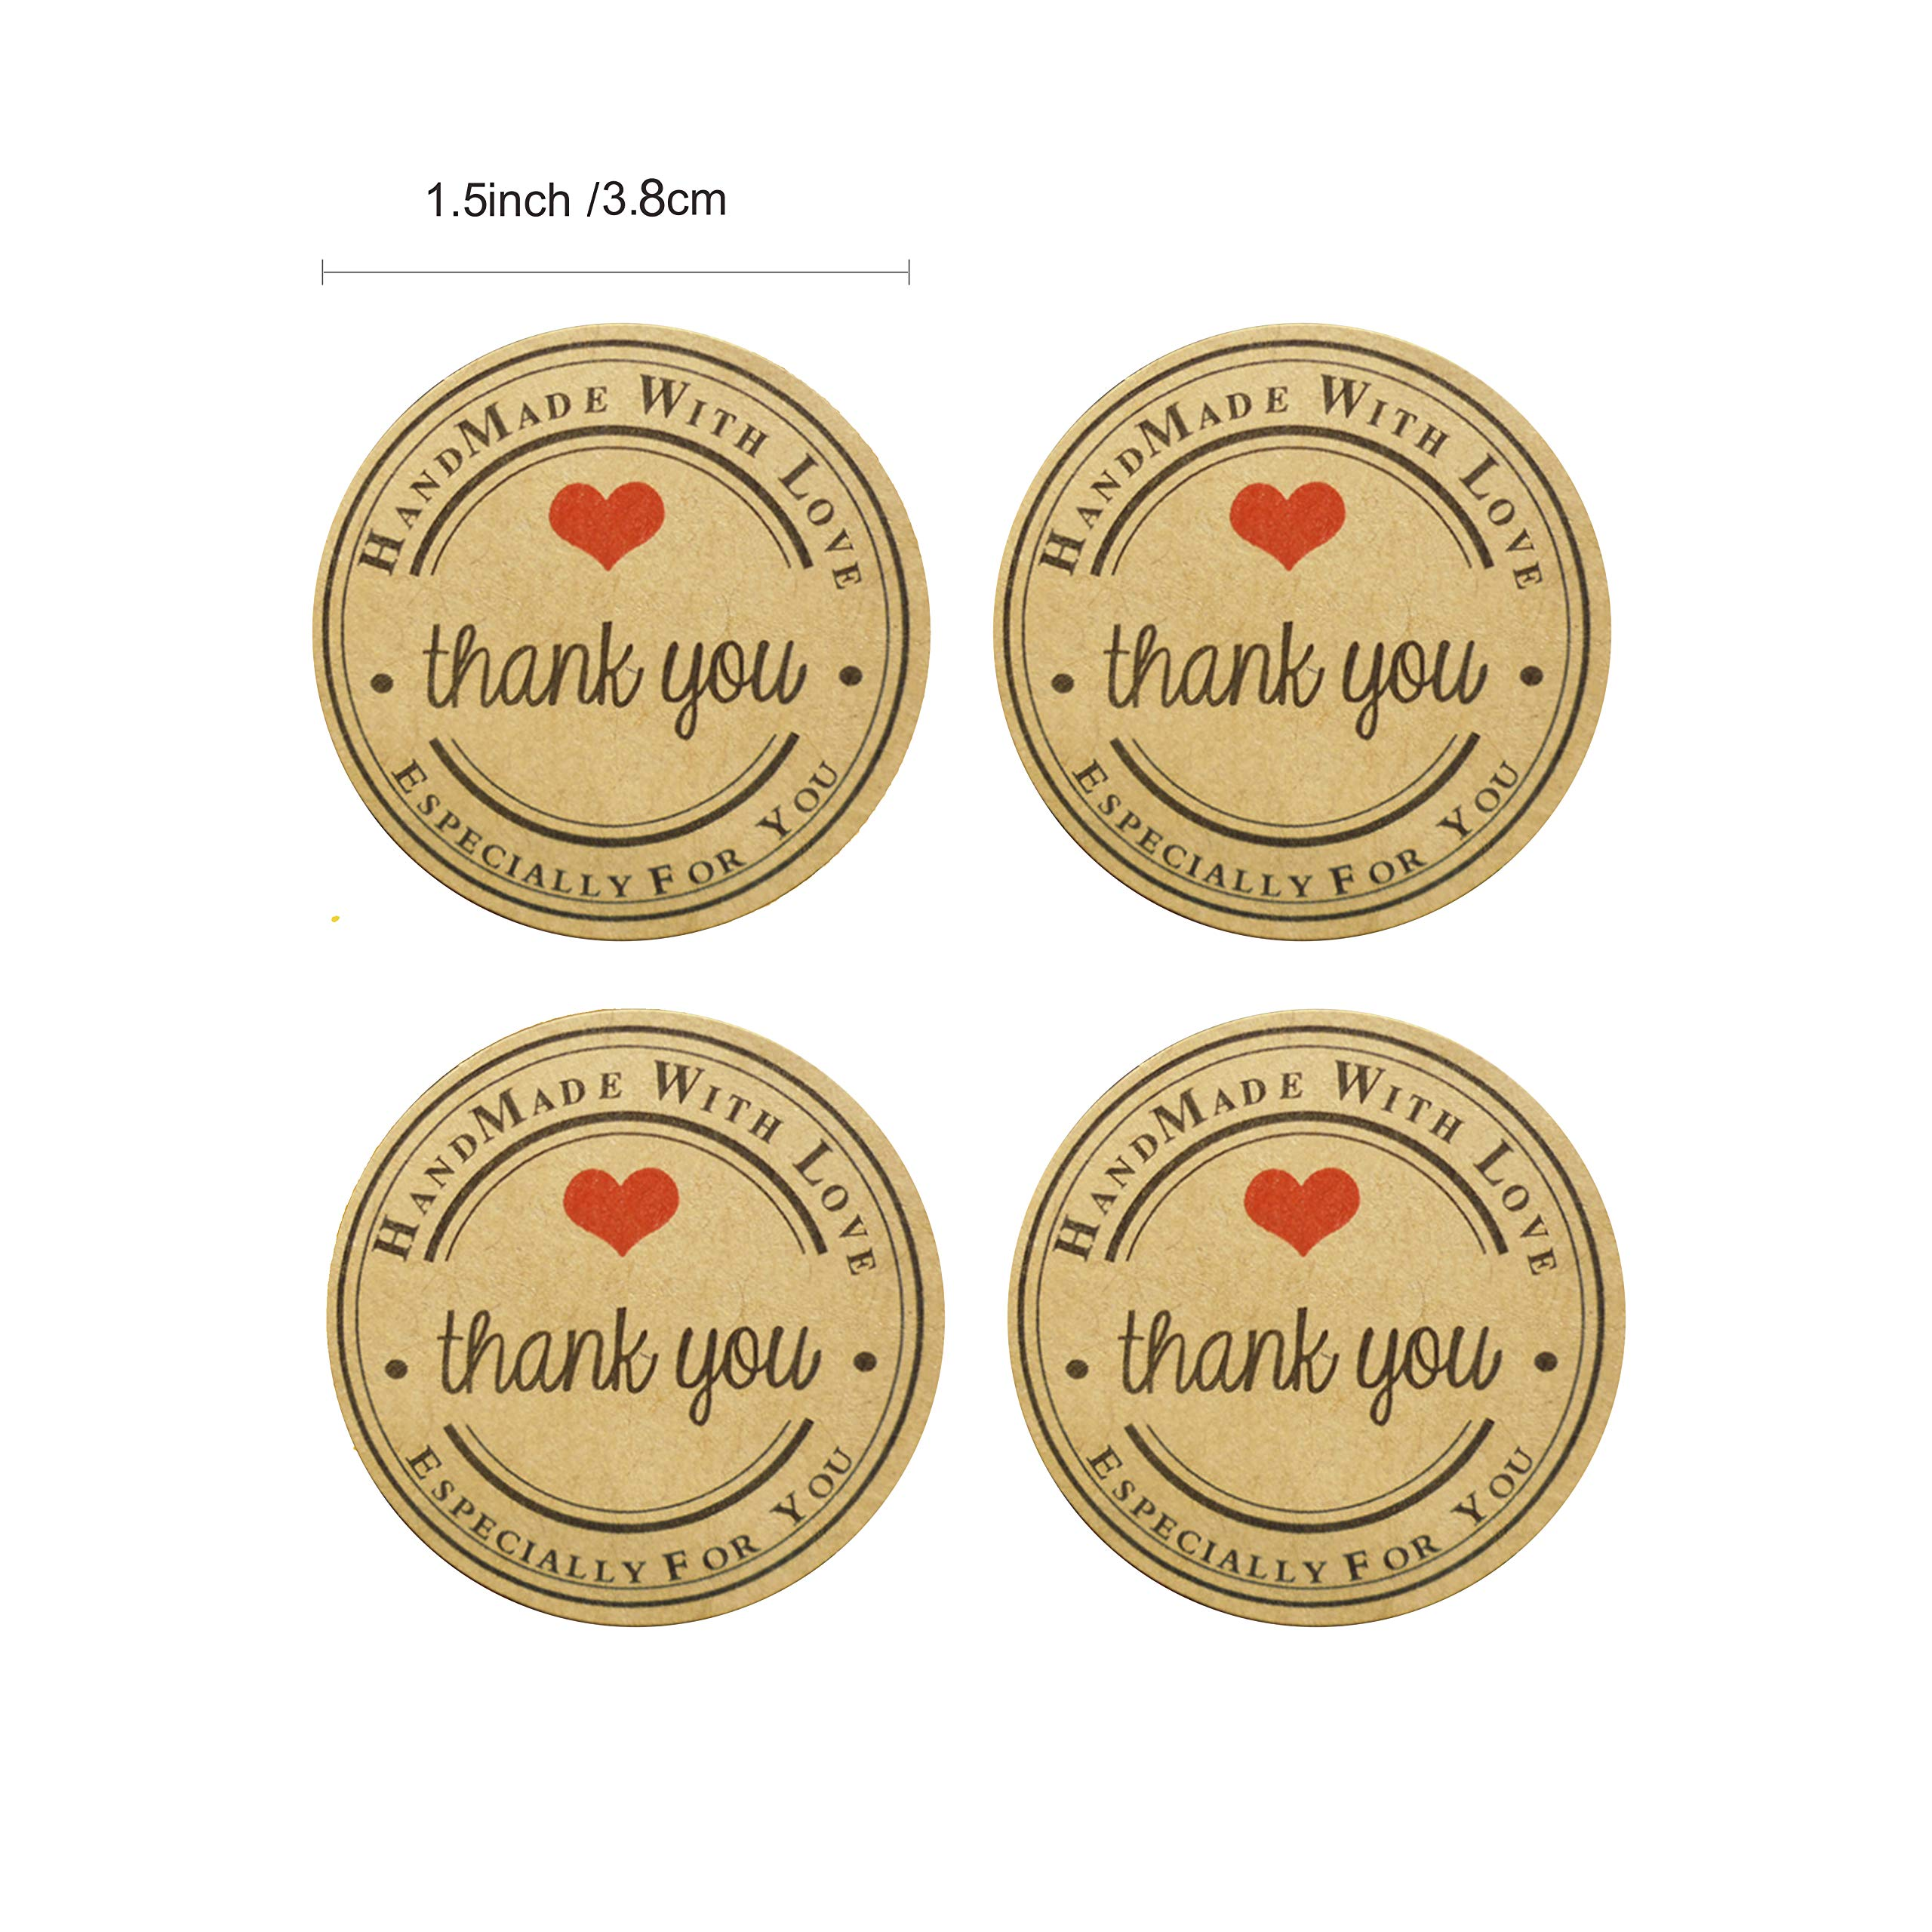 Wonderful thank you stickers